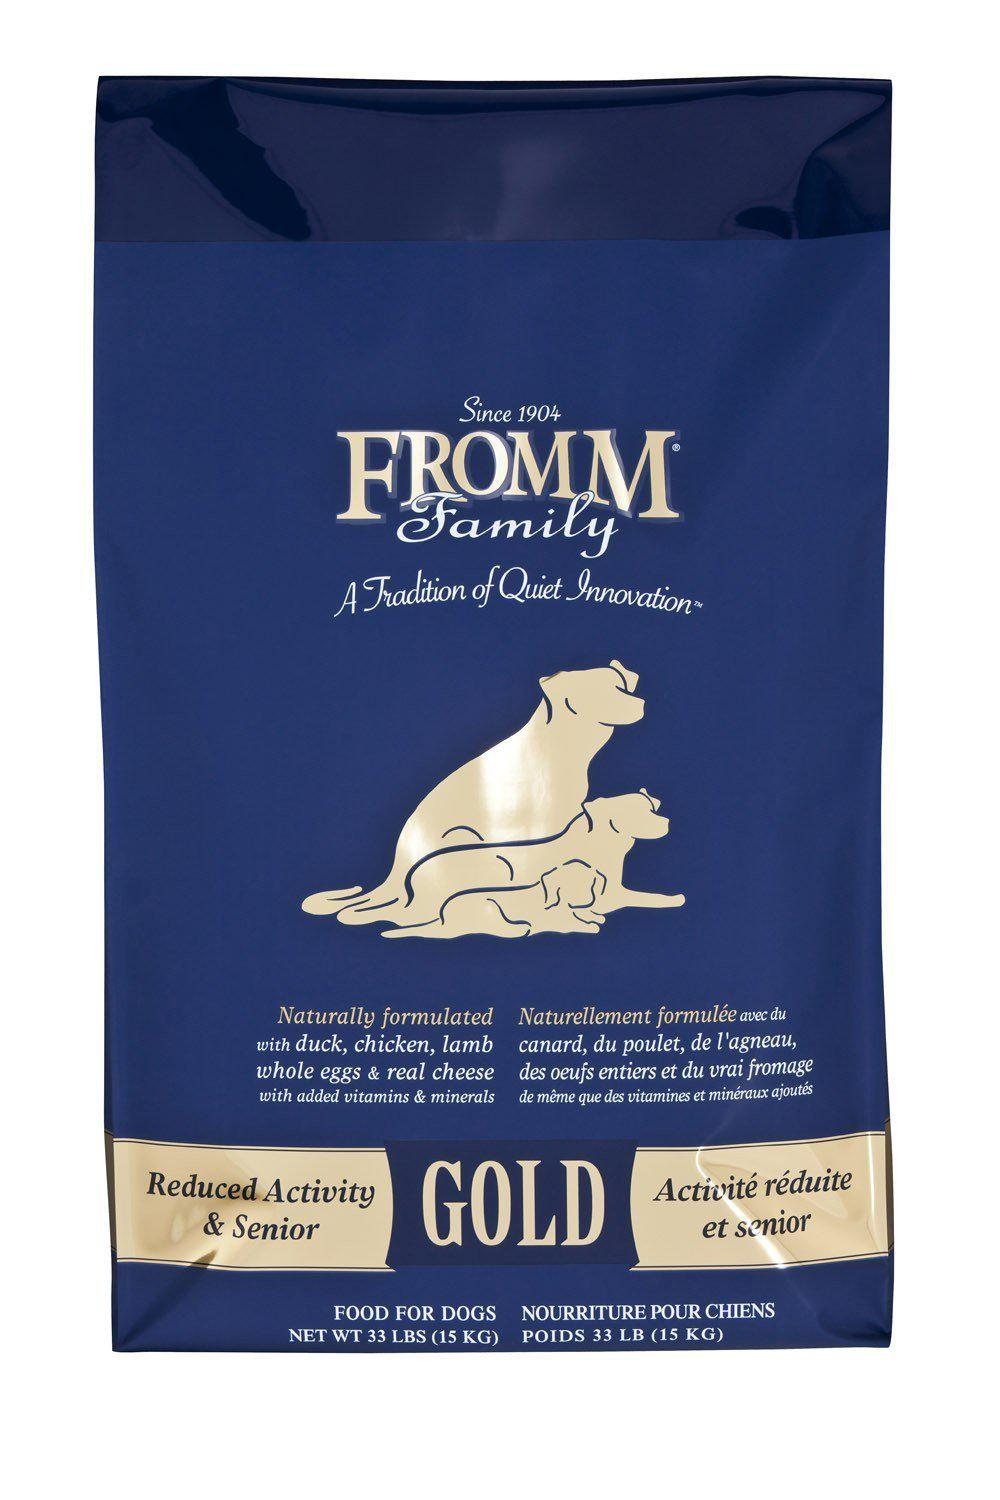 Fromm Dog Food - Gold Reduced Activity & Senior-Le Pup Pet Supplies and Grooming